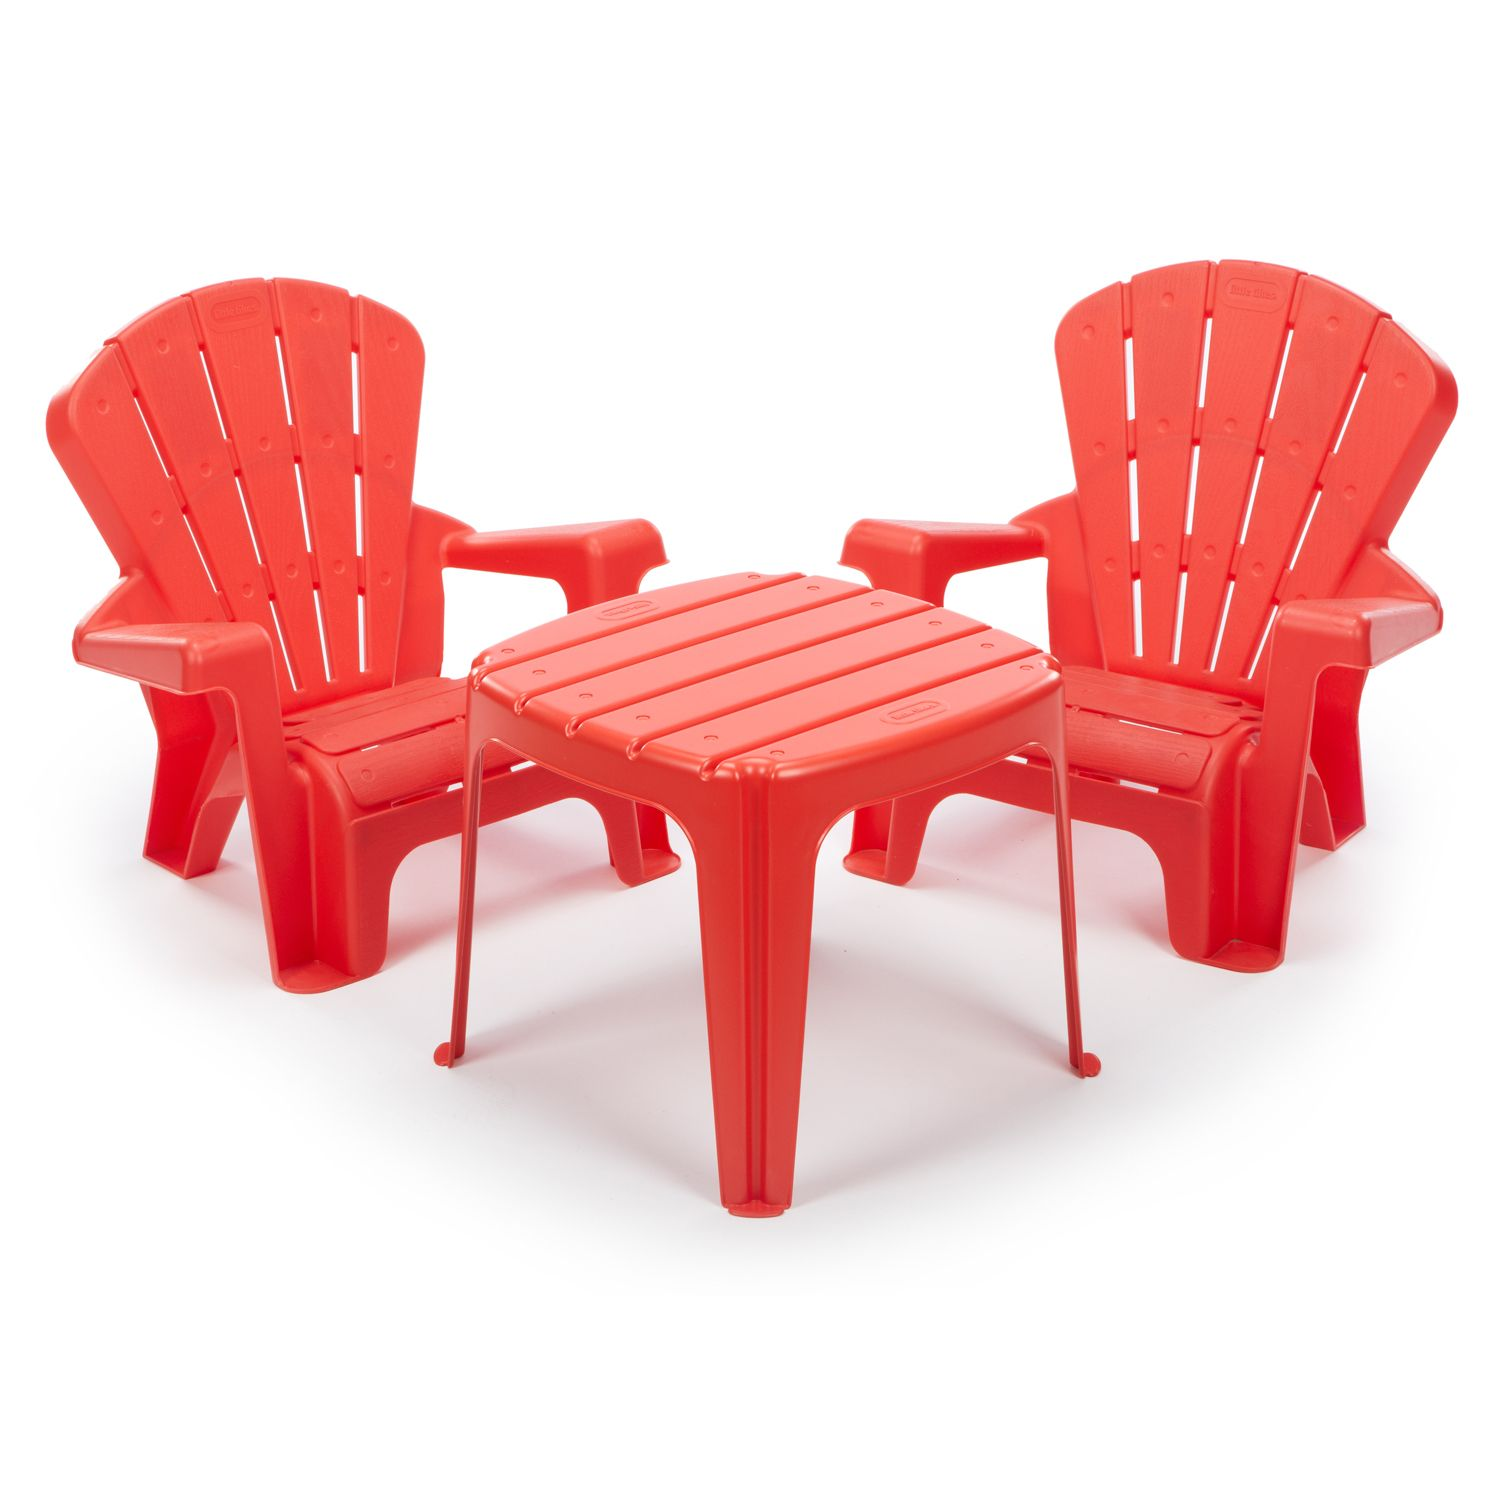 sc 1 st  Kohlu0027s : garden table and chair sets - pezcame.com